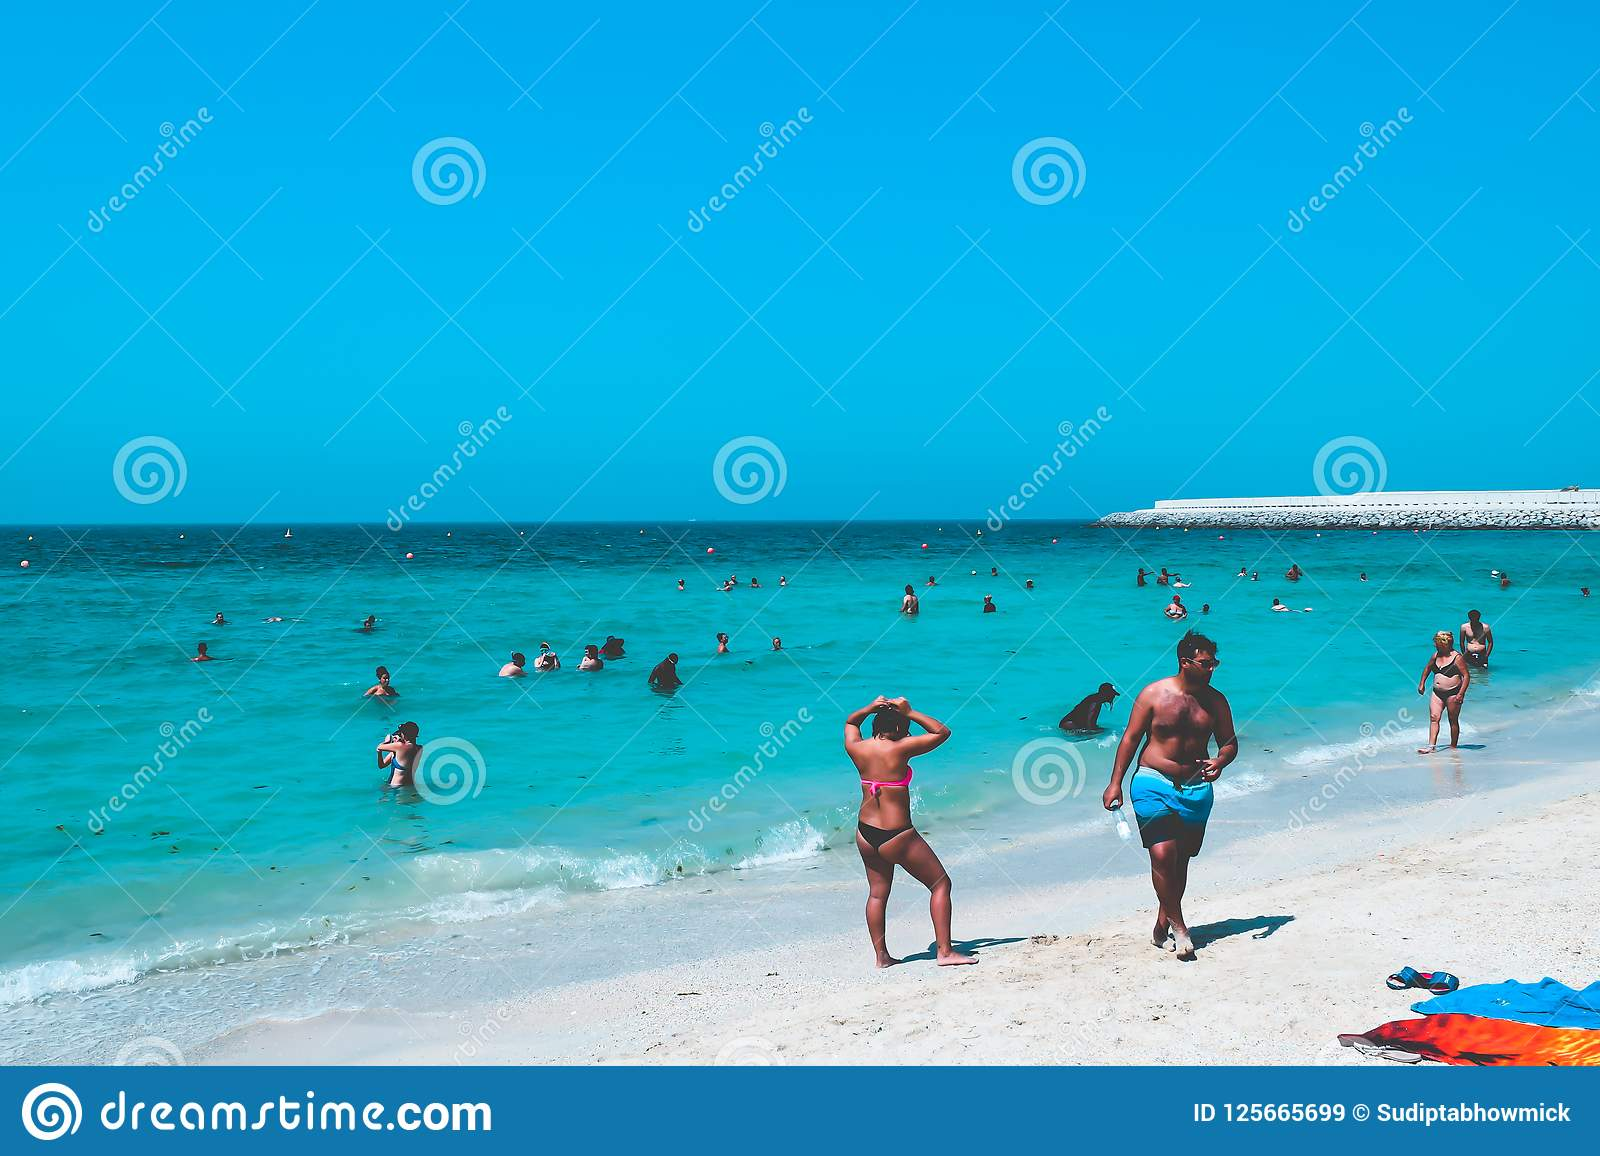 Dubai Uae United Arab Emirates 23 April 2016 View Of Public Beach With Turquoise Water Editorial Stock Image Image Of Couple Christmas 125665699